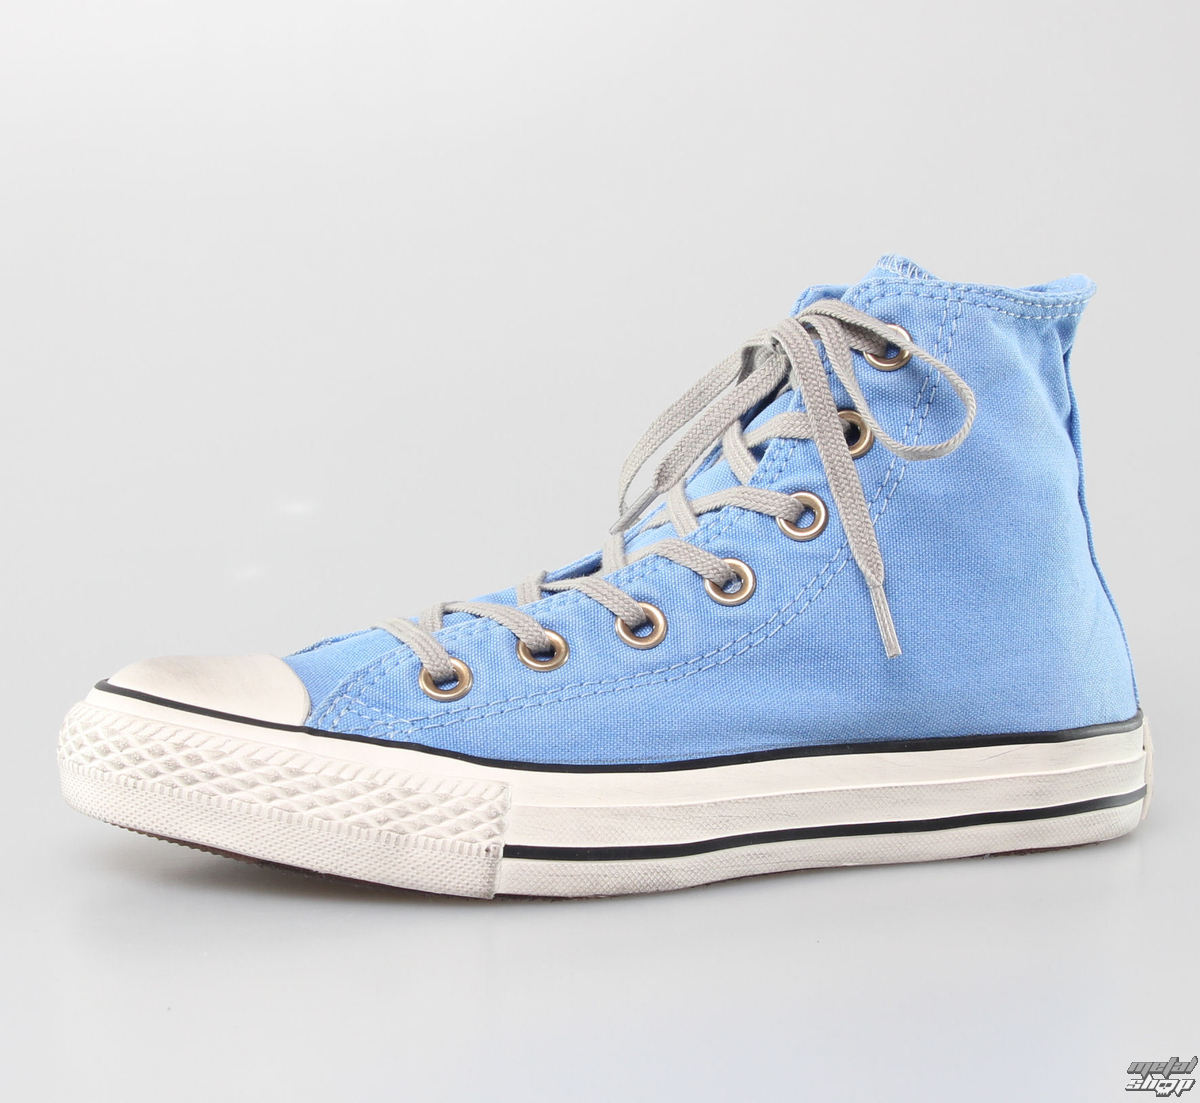 boty CONVERSE - Chuck Taylor - All Star - Smalt Blue - C142225F